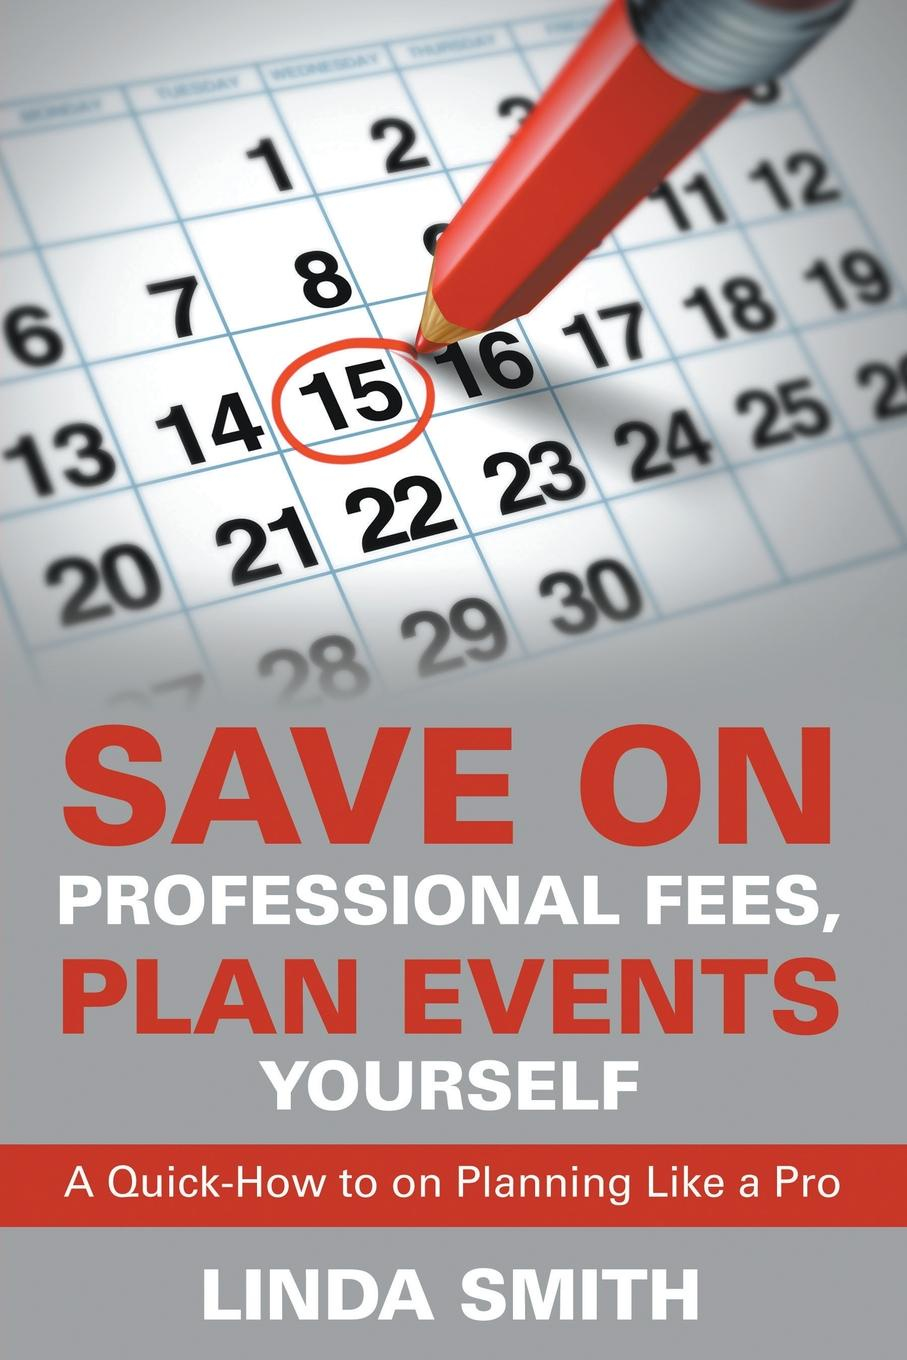 Save on Professional Fees, Plan Events Yourself. A Quick-How to on Planning Like a Pro Professional fees for various services can add up quite quickly for...